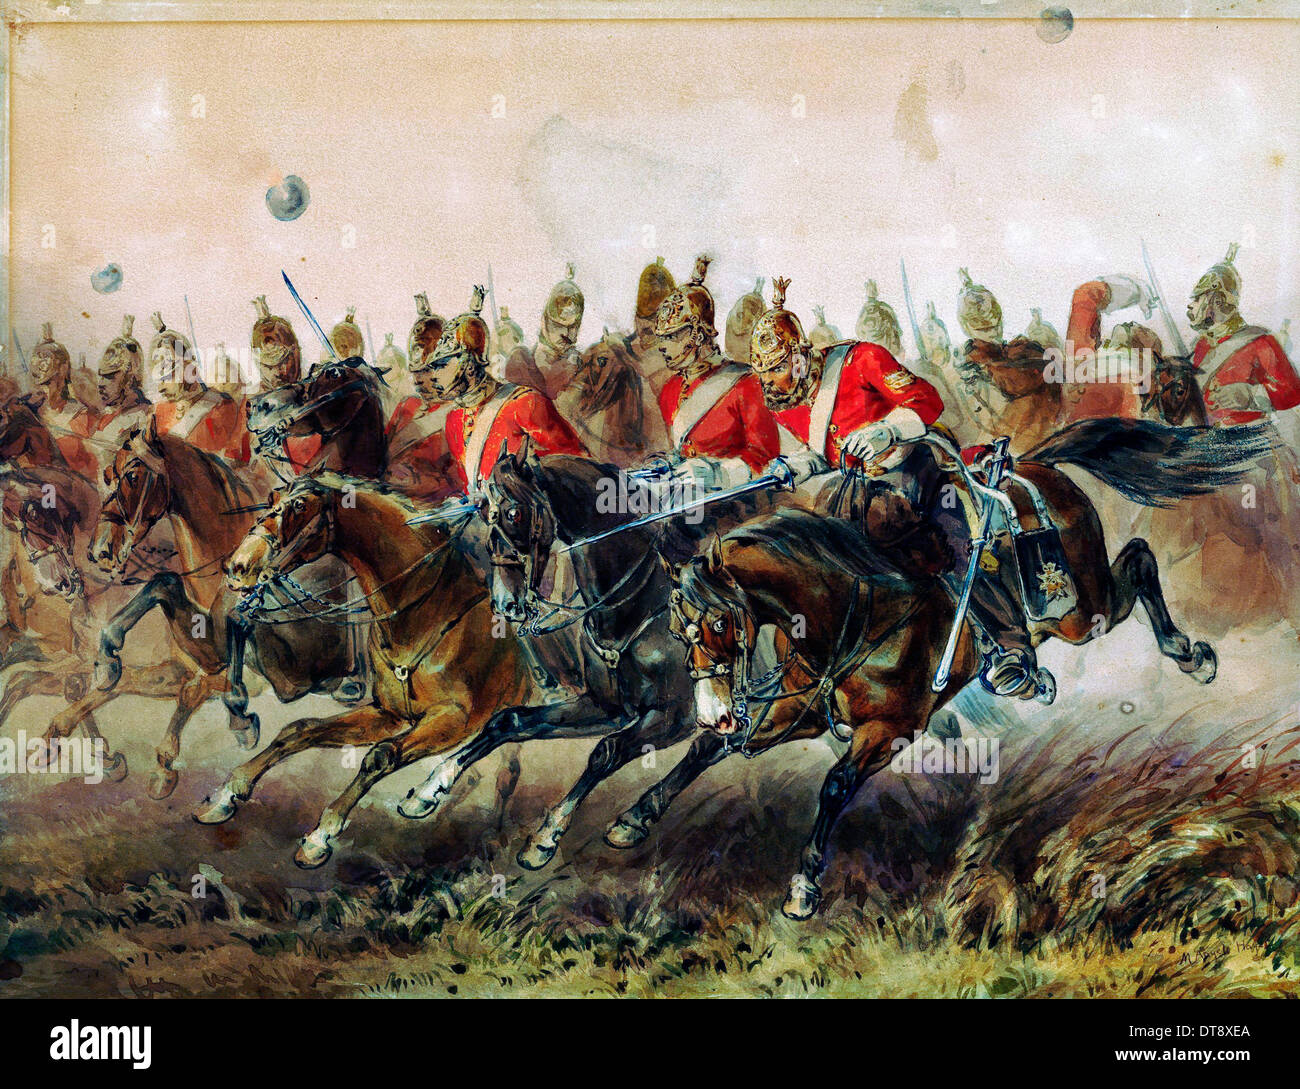 The Charge of the Light Brigade during the Battle of Balaclava, 1854. Artist: Hayes, Michael Angelo (1820-1877) - Stock Image